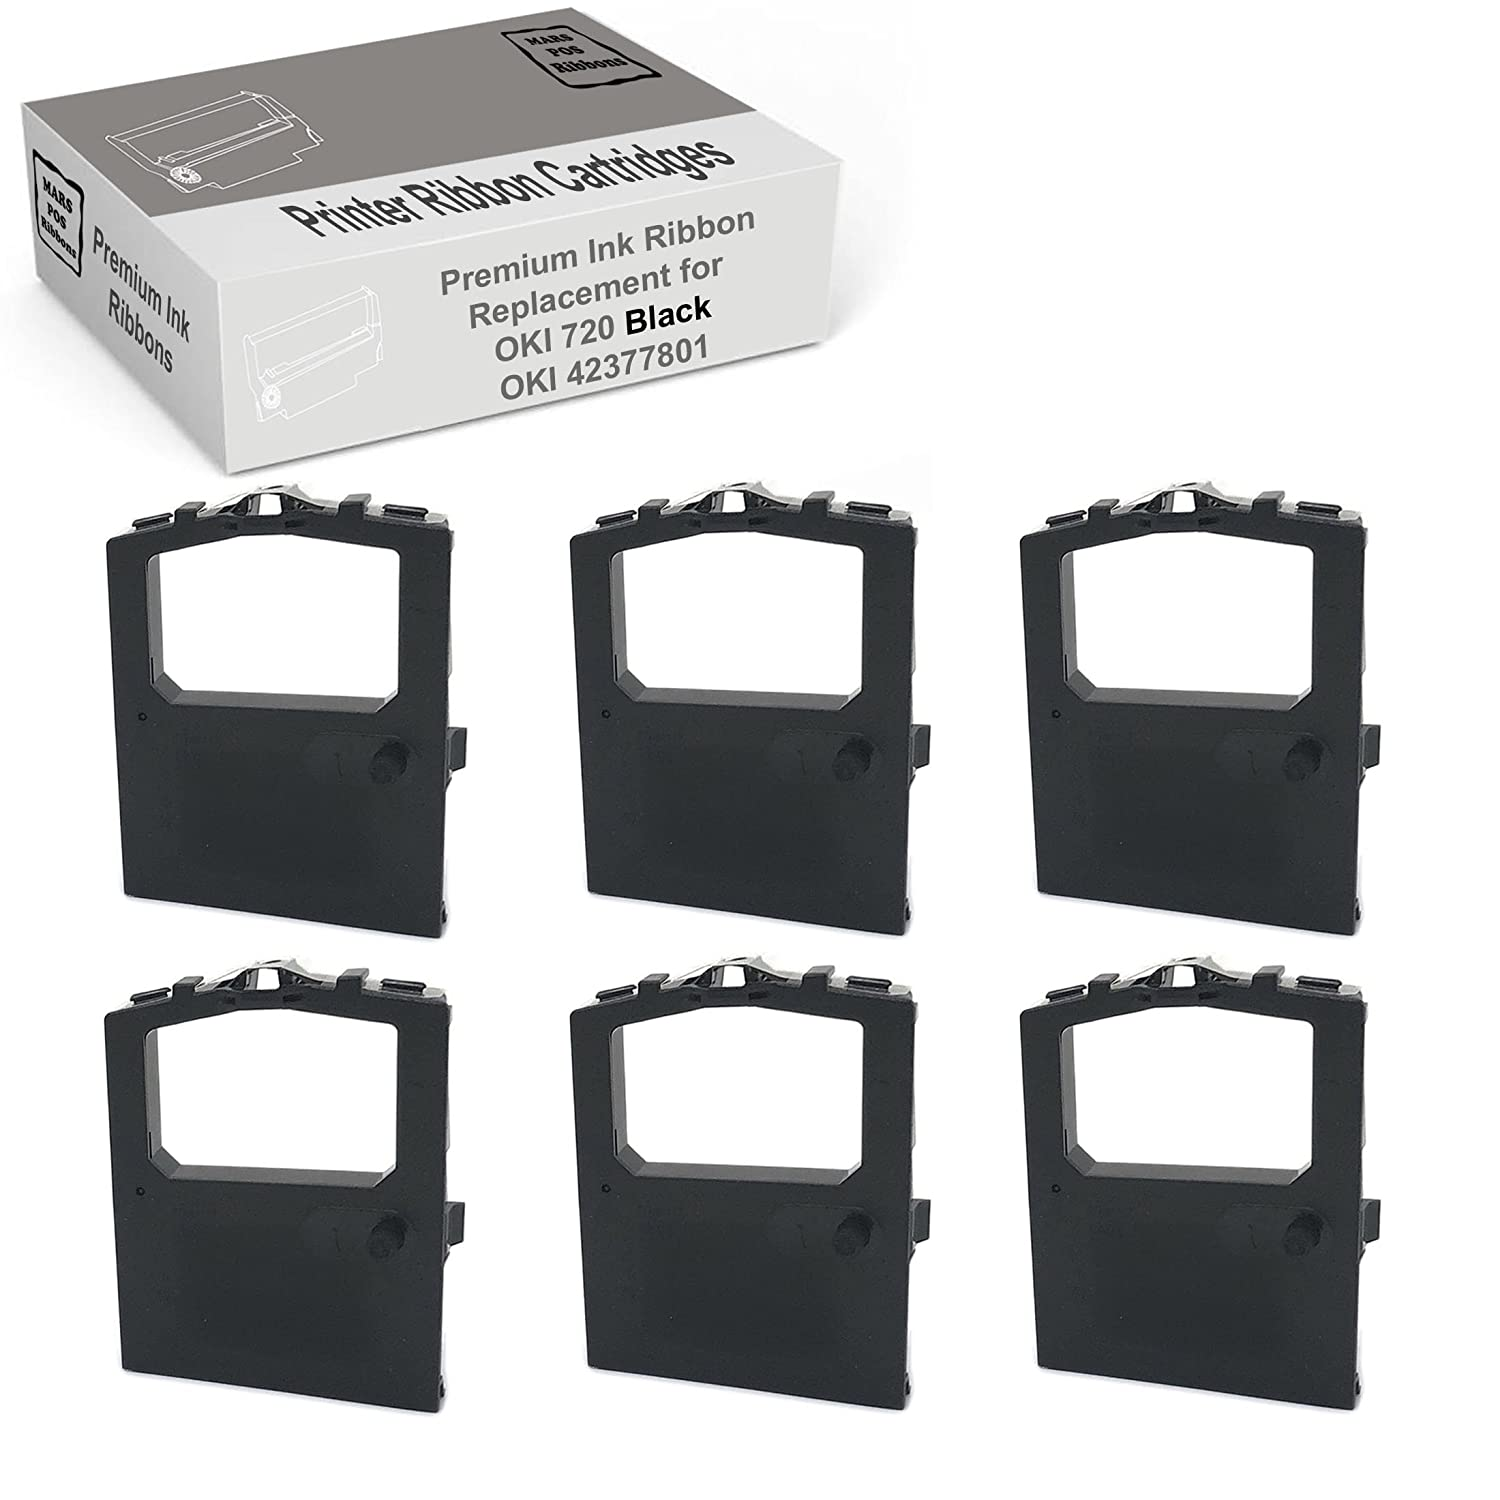 Oki 42377801 Microline Ribbon 6 Pack Black Compatible Ribbons for Oki 720 Microline 420 420N 421 421N 490 490N 491 491N MARS POS Printer Ribbons OKI CR42377801